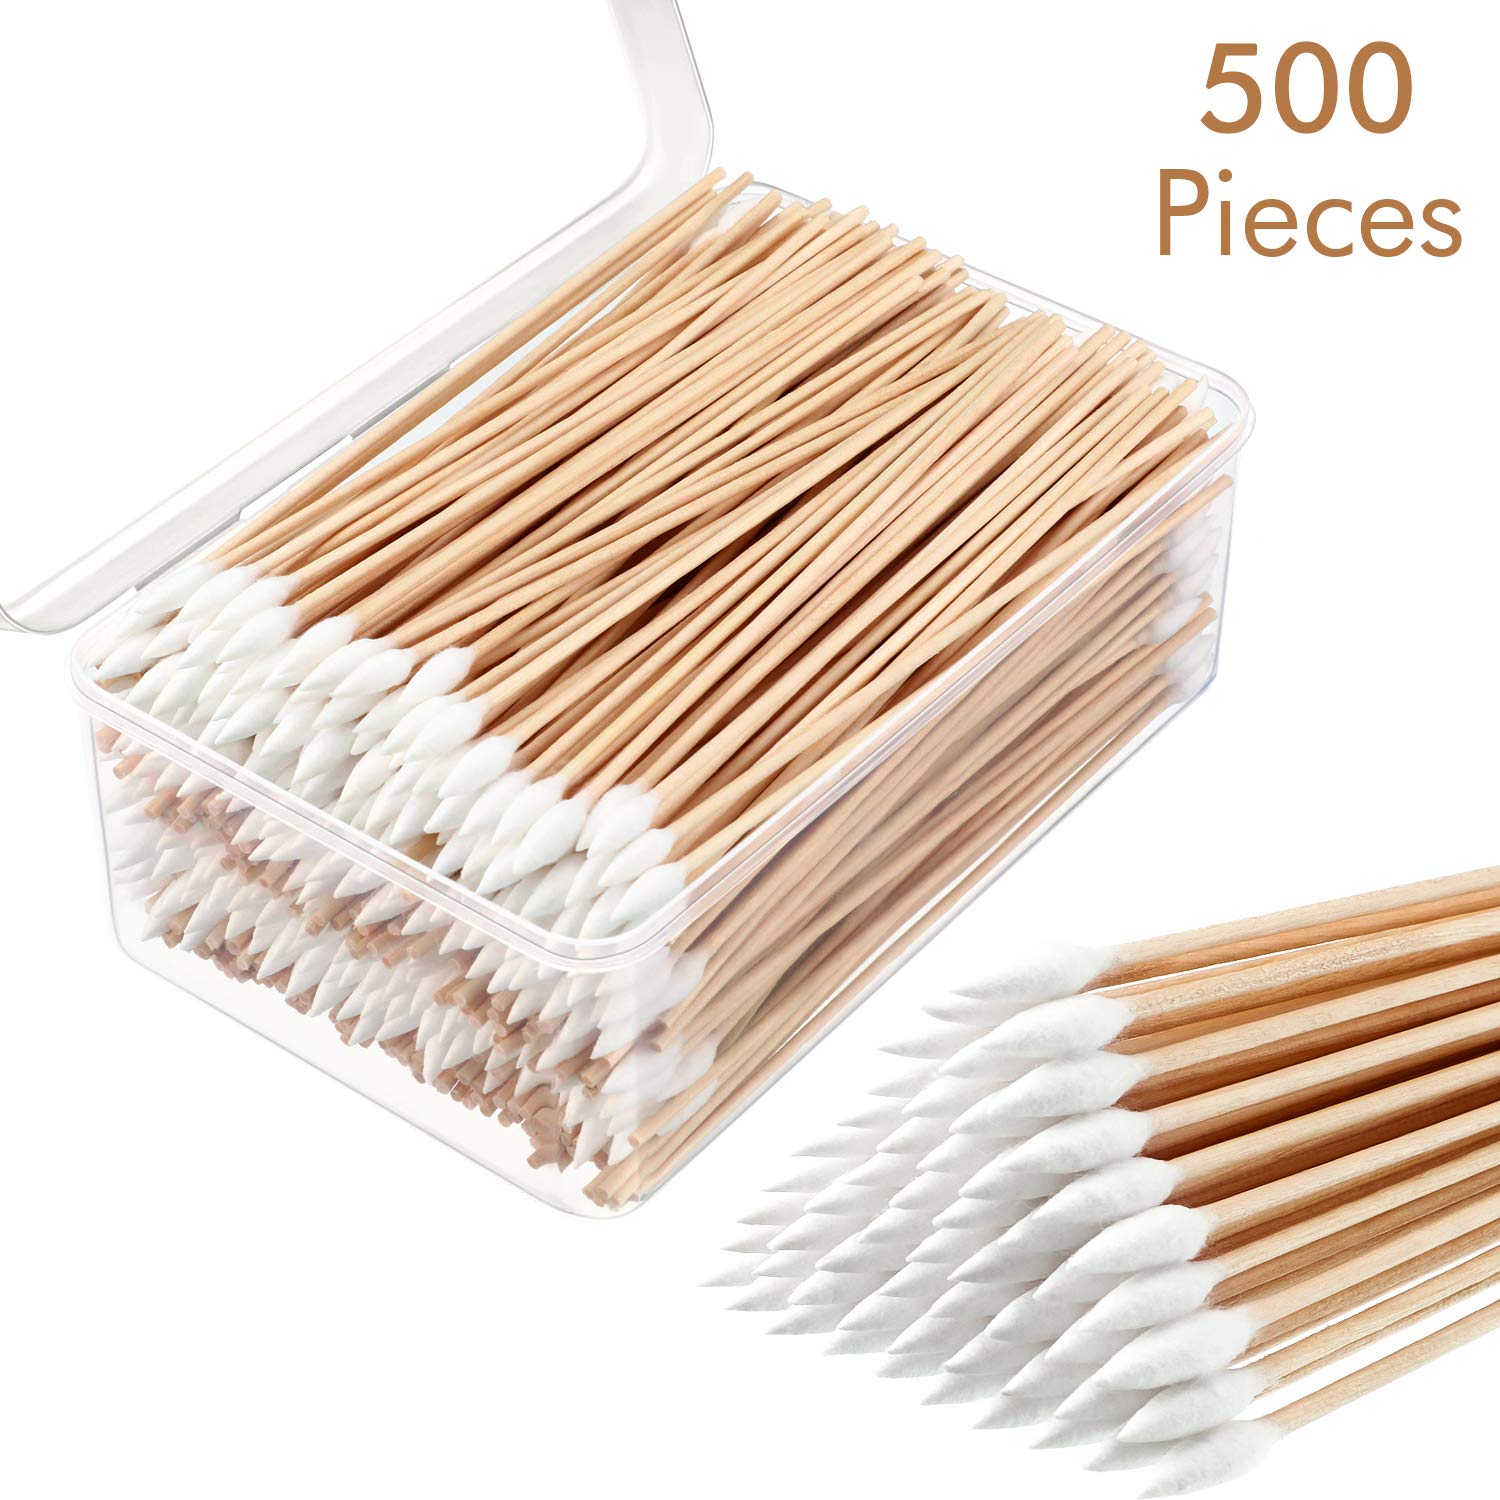 Norme 6 Inch Caliber Cotton Cleaning Swabs Single Round Tip with Wooden Handle Cleaning Swabs for Jewelry Ceramics Electronics in Storage Case (Pointed Tip, 500 Pieces) by Norme